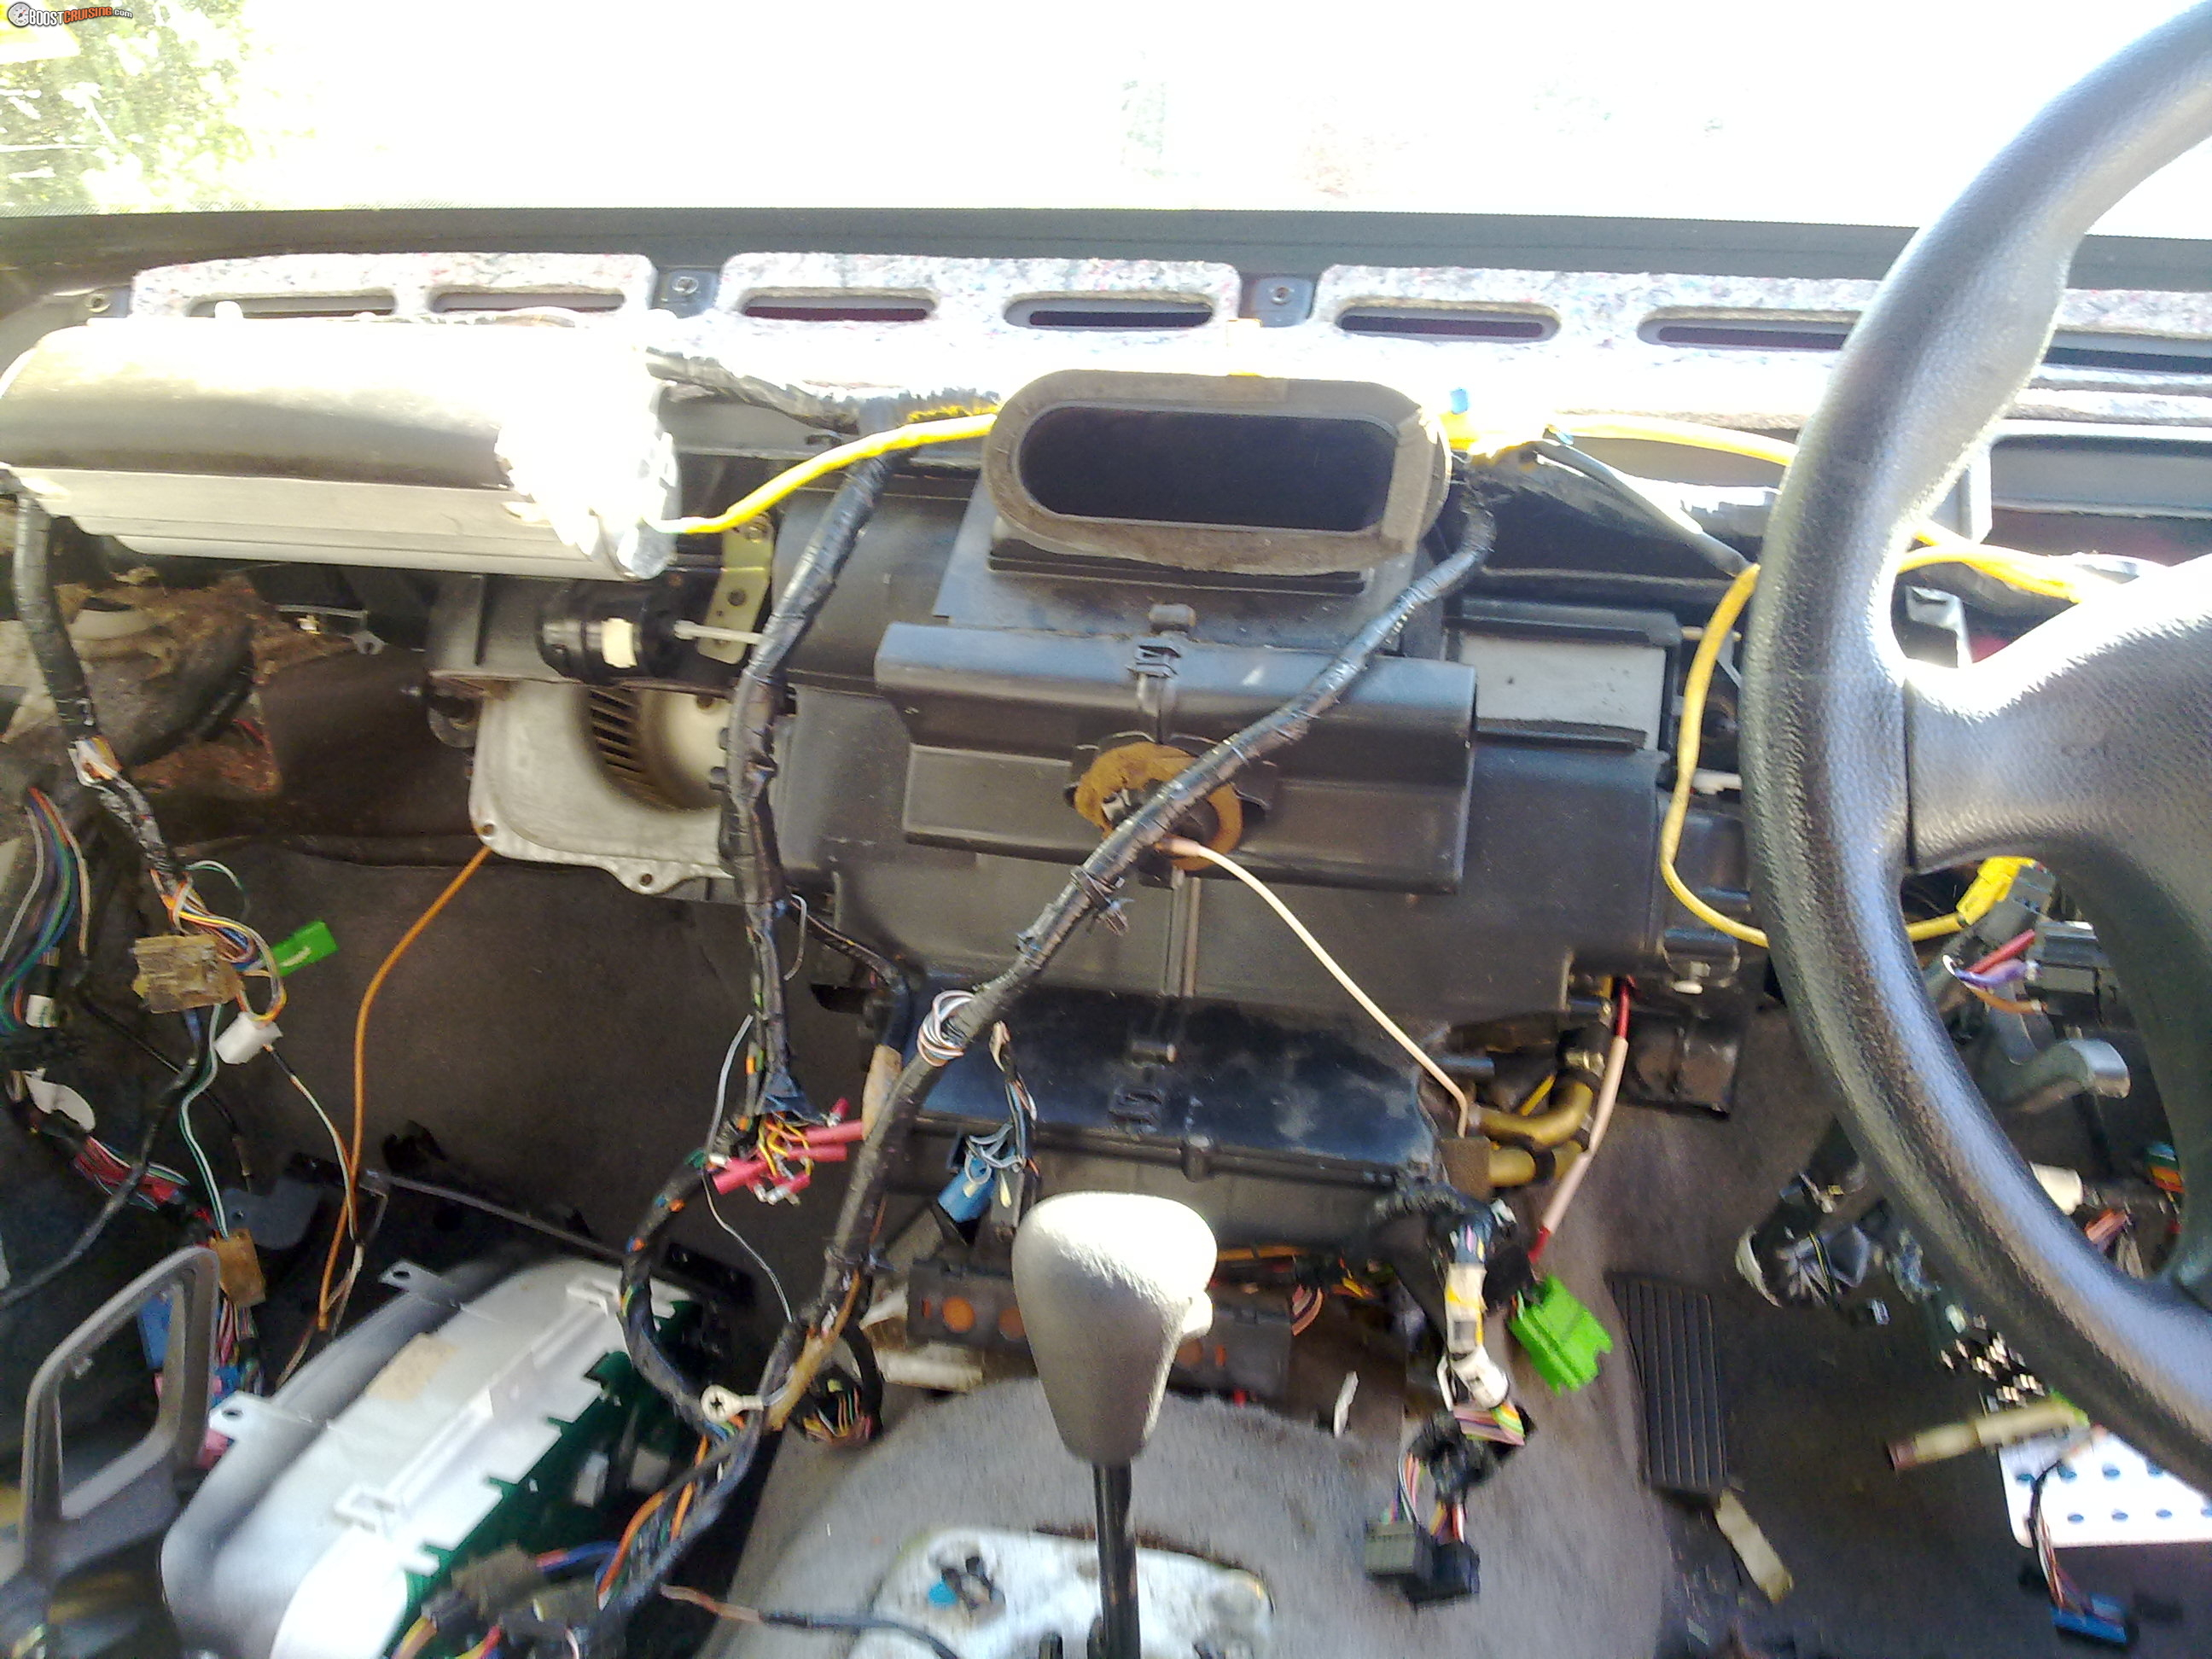 Vs Commodore Wiring Harness Boostcruising Automotive Loom Photo Of Their Completely Installed Without Any Dash Or Trim Hiding It Id Love To See The Pictures I Have Attached A Where Im Up